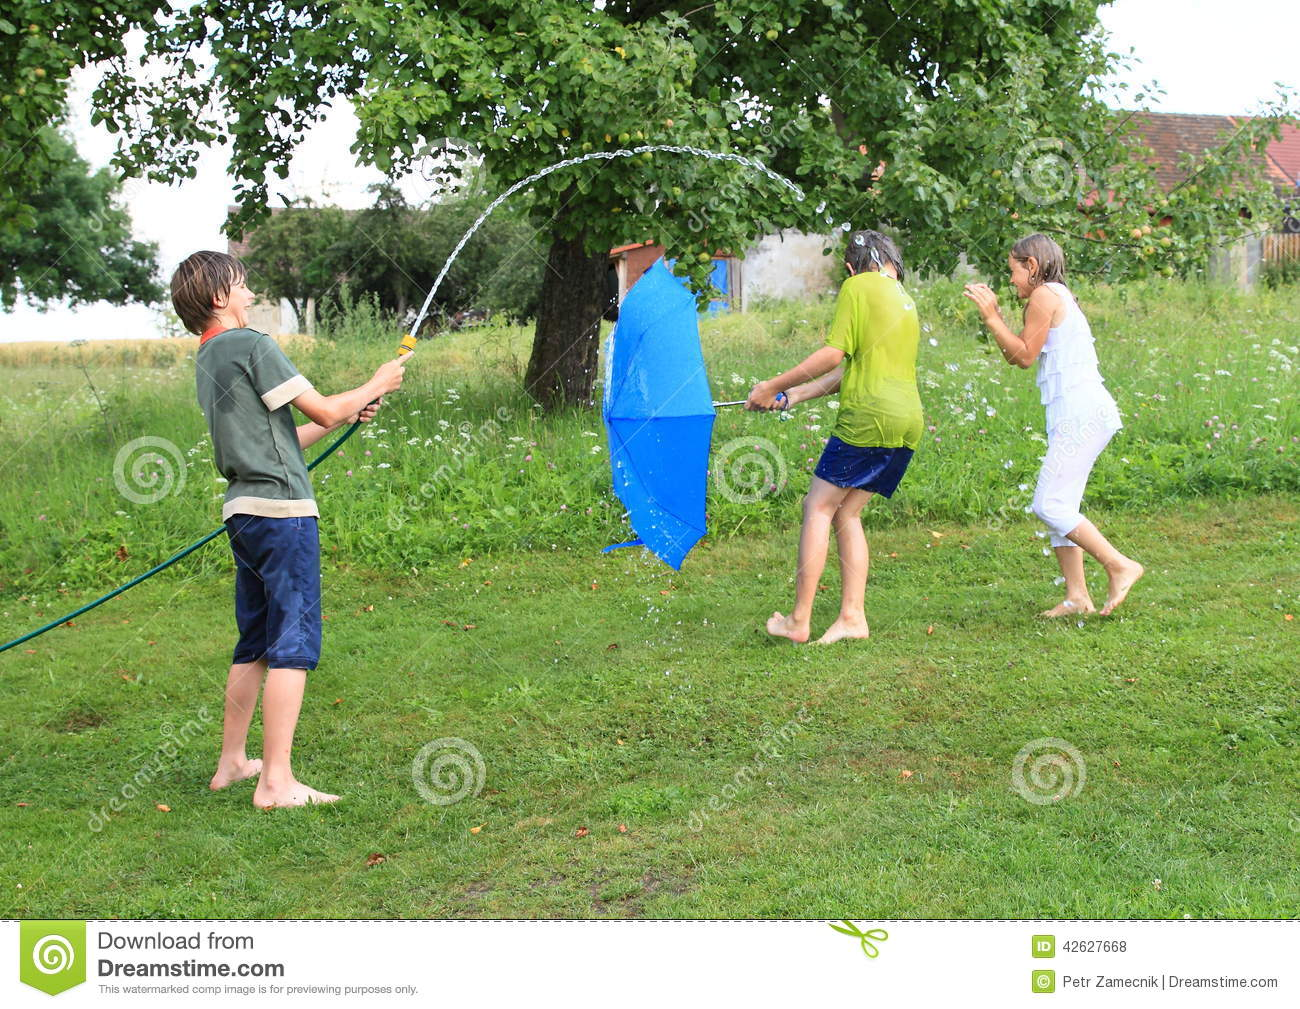 Boy splashing another kids with garden hose